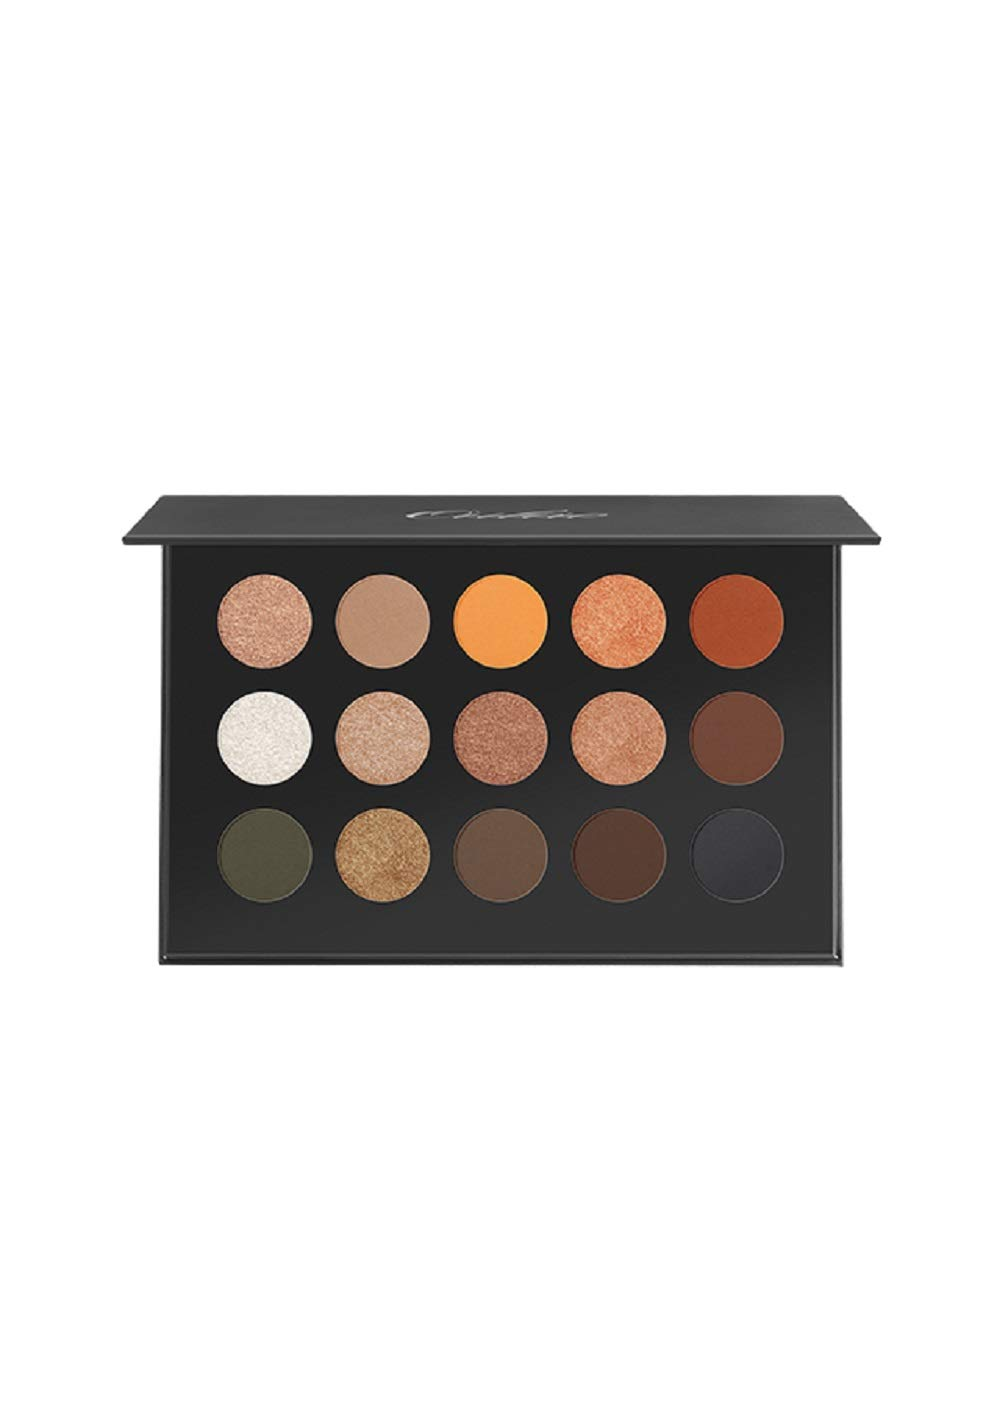 OULAC Pro 15 Shades Eyeshadow Palette Bronze & Olive, Easy to Blend Shades for Warm \/ Summer Complexions, Non-Drying Formula, Cruelty Free, 28.5 grams \/ 1 ounces